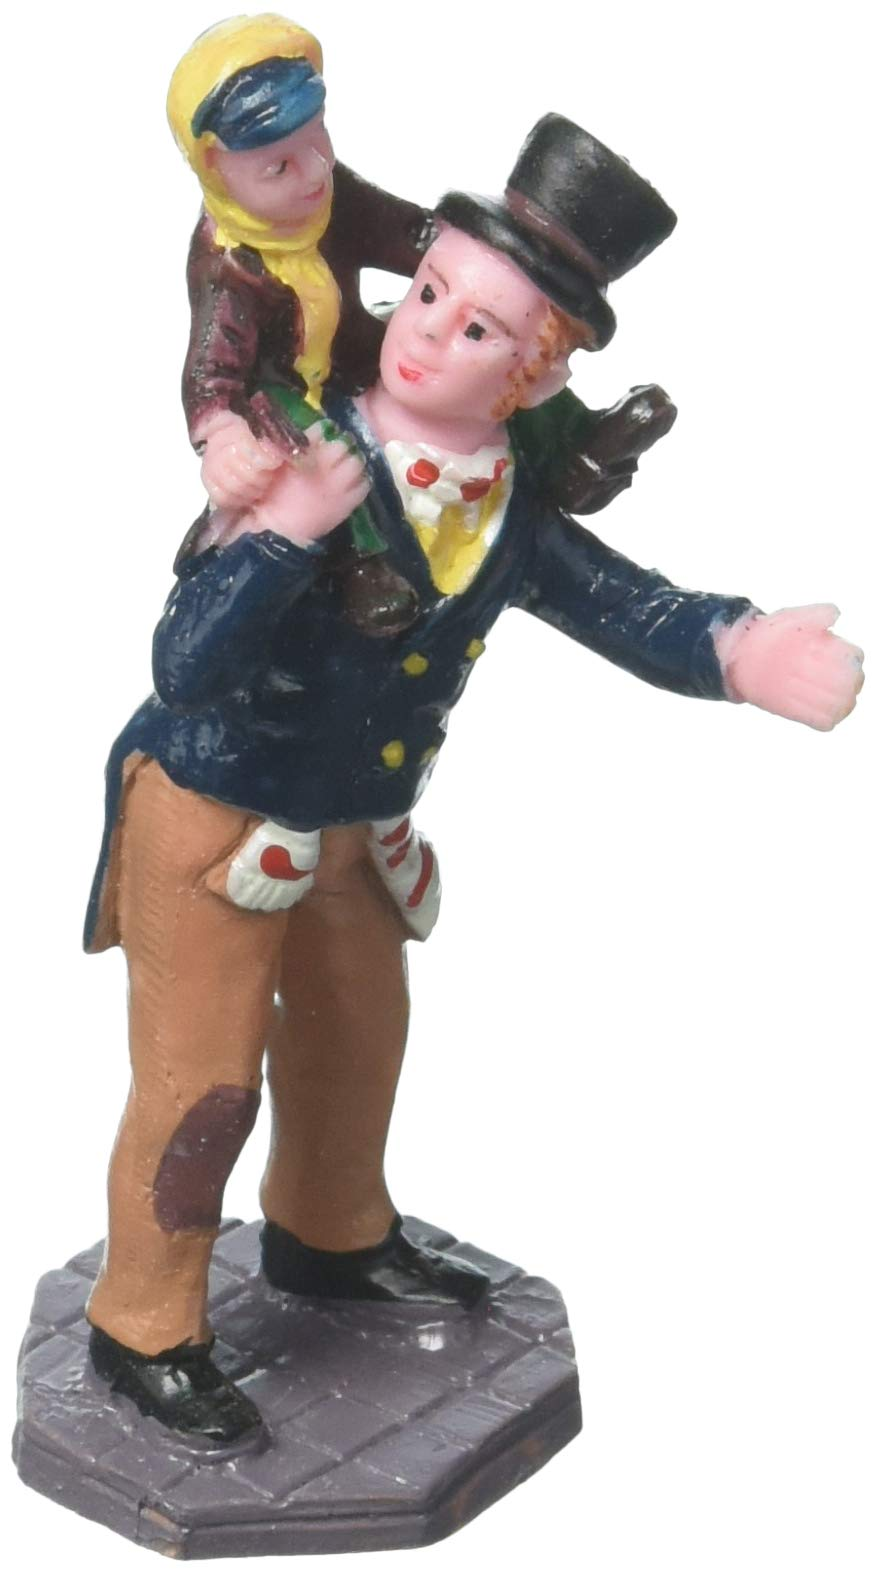 Lemax Figurine - Caddington Village -''Bob Cratchit and Tiny Tim'' #02403 set of 1